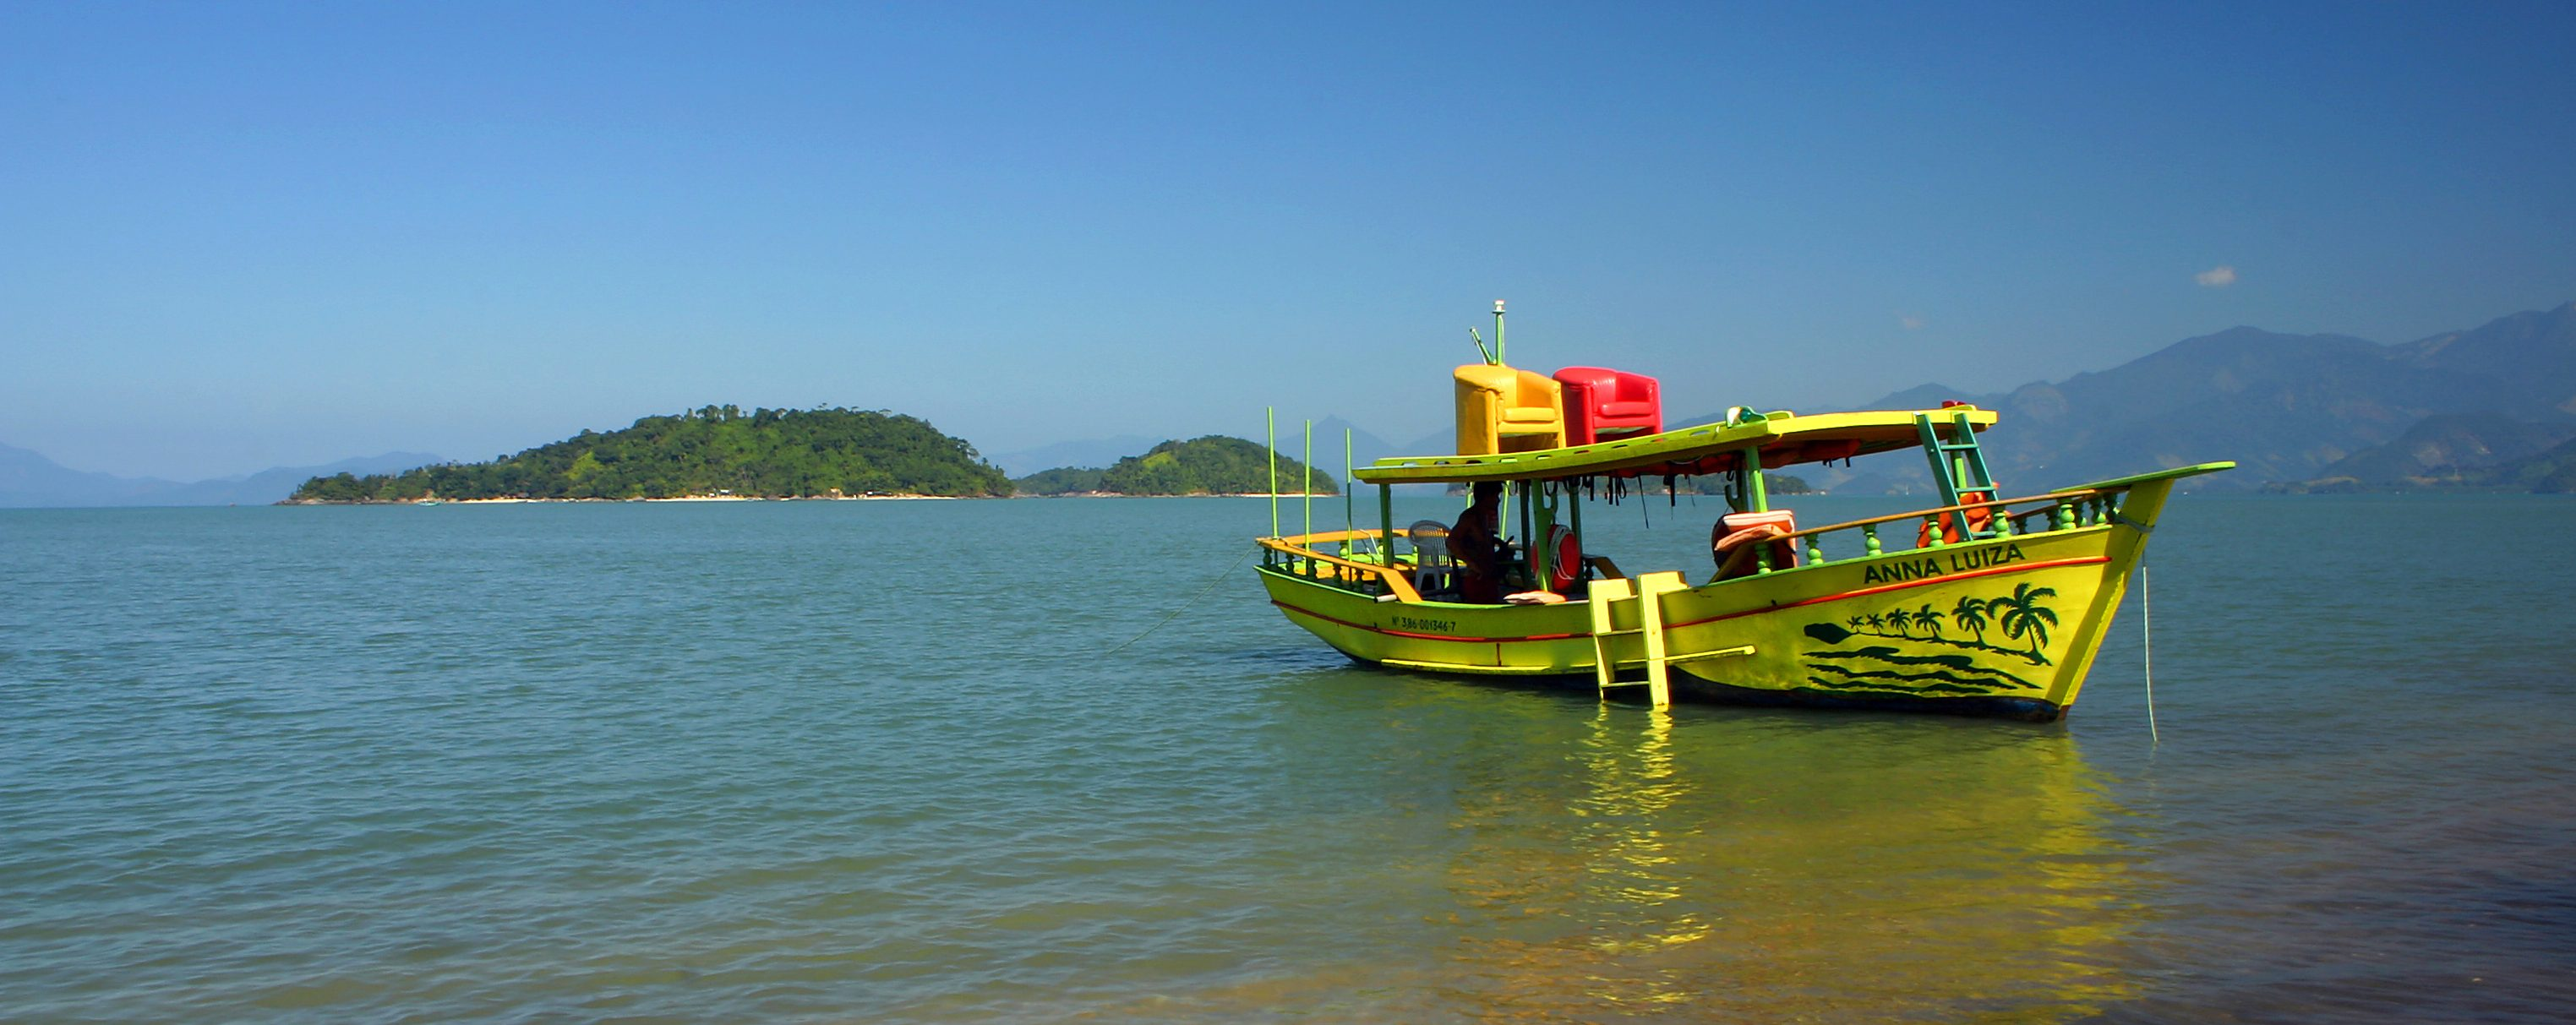 Ilha Grande, one of the boats docked up on the beach.